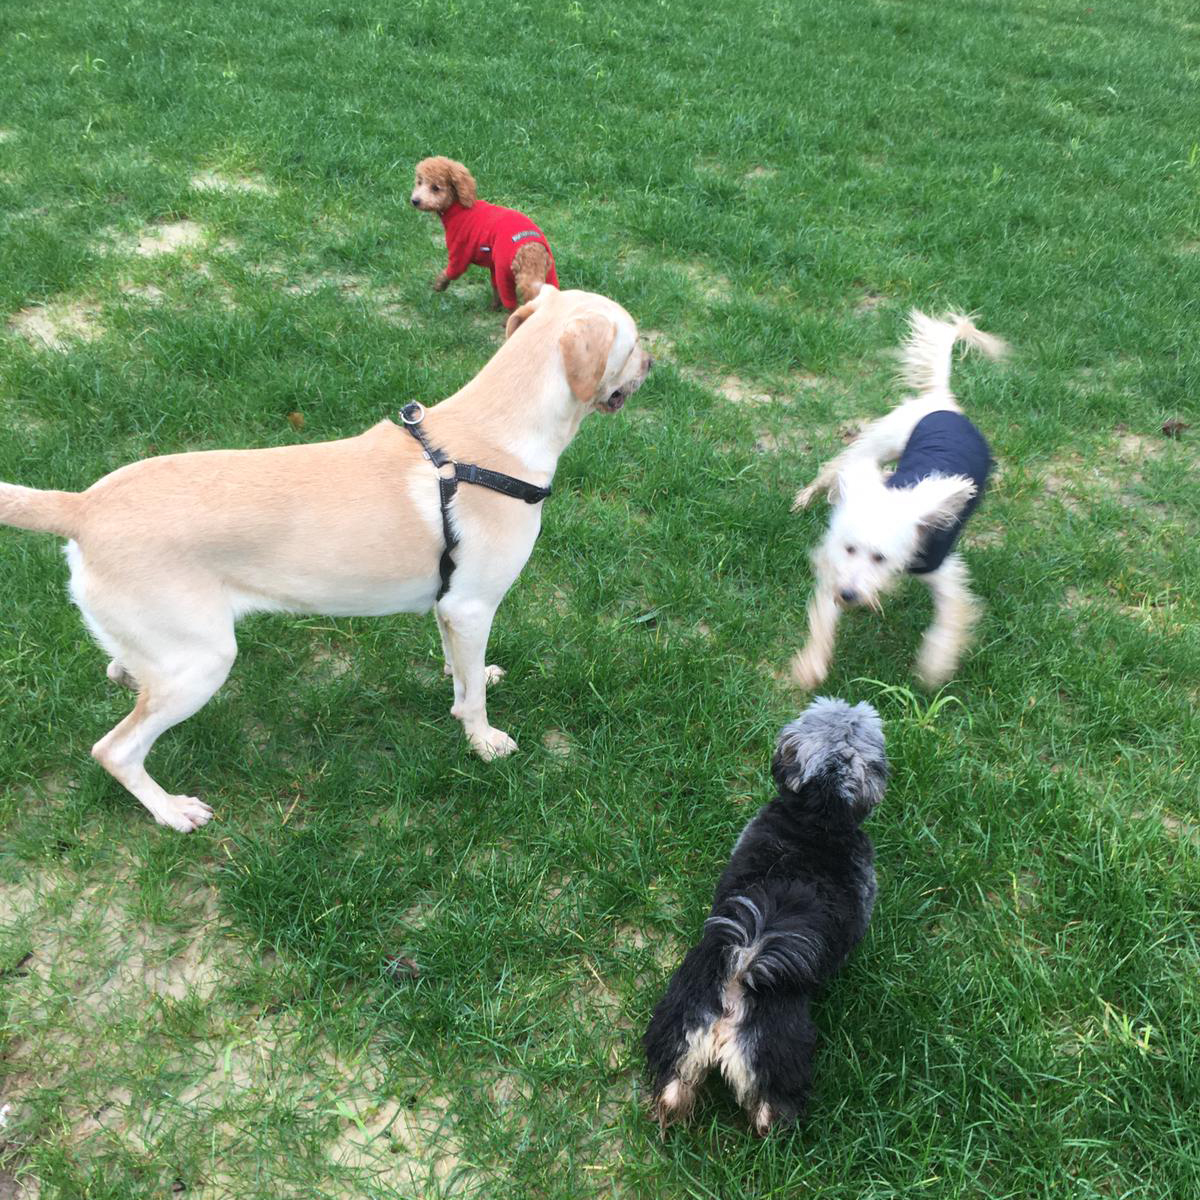 dogs having fun at daycare in croydon field